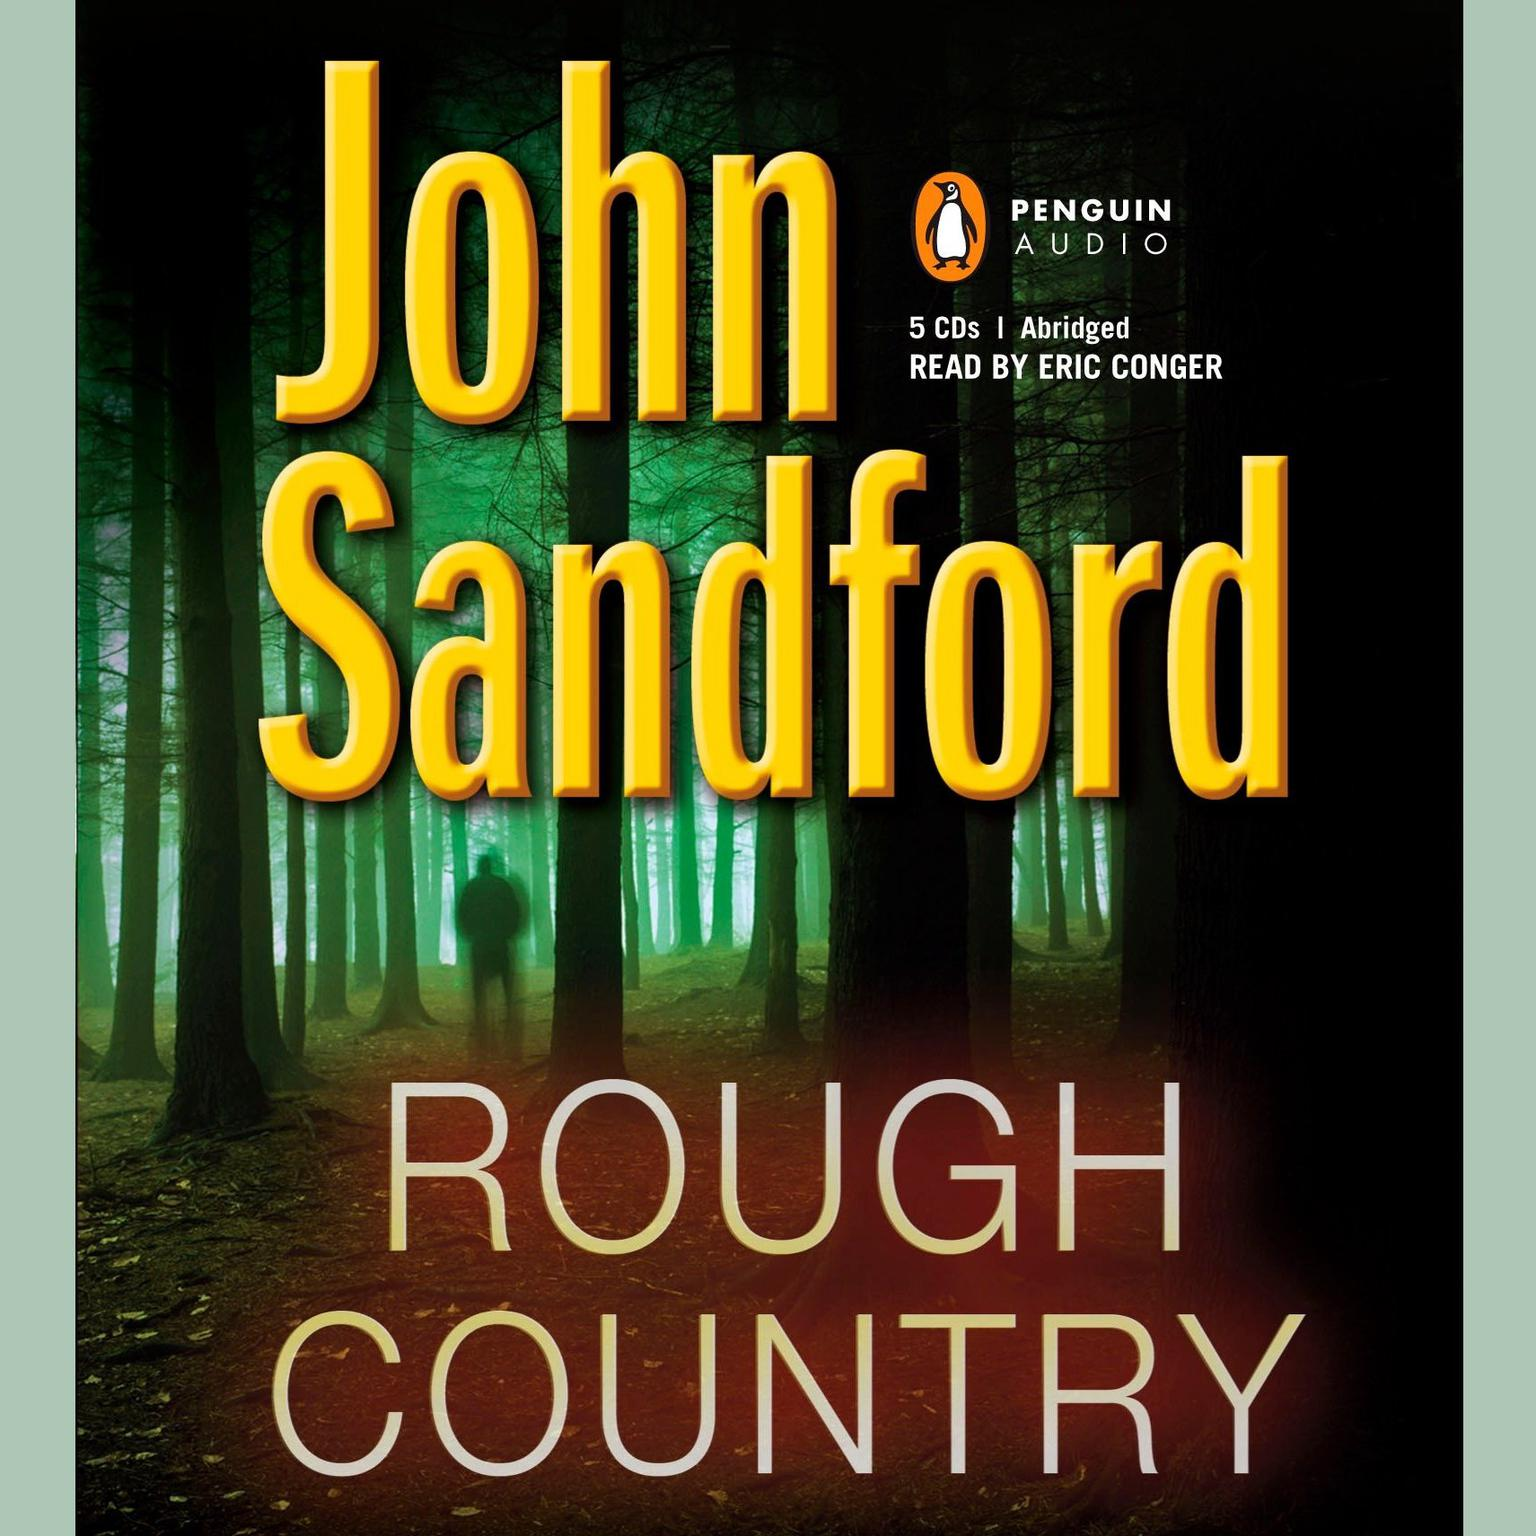 Download Rough Country abridged Audiobook by John Sandford for just $5 95